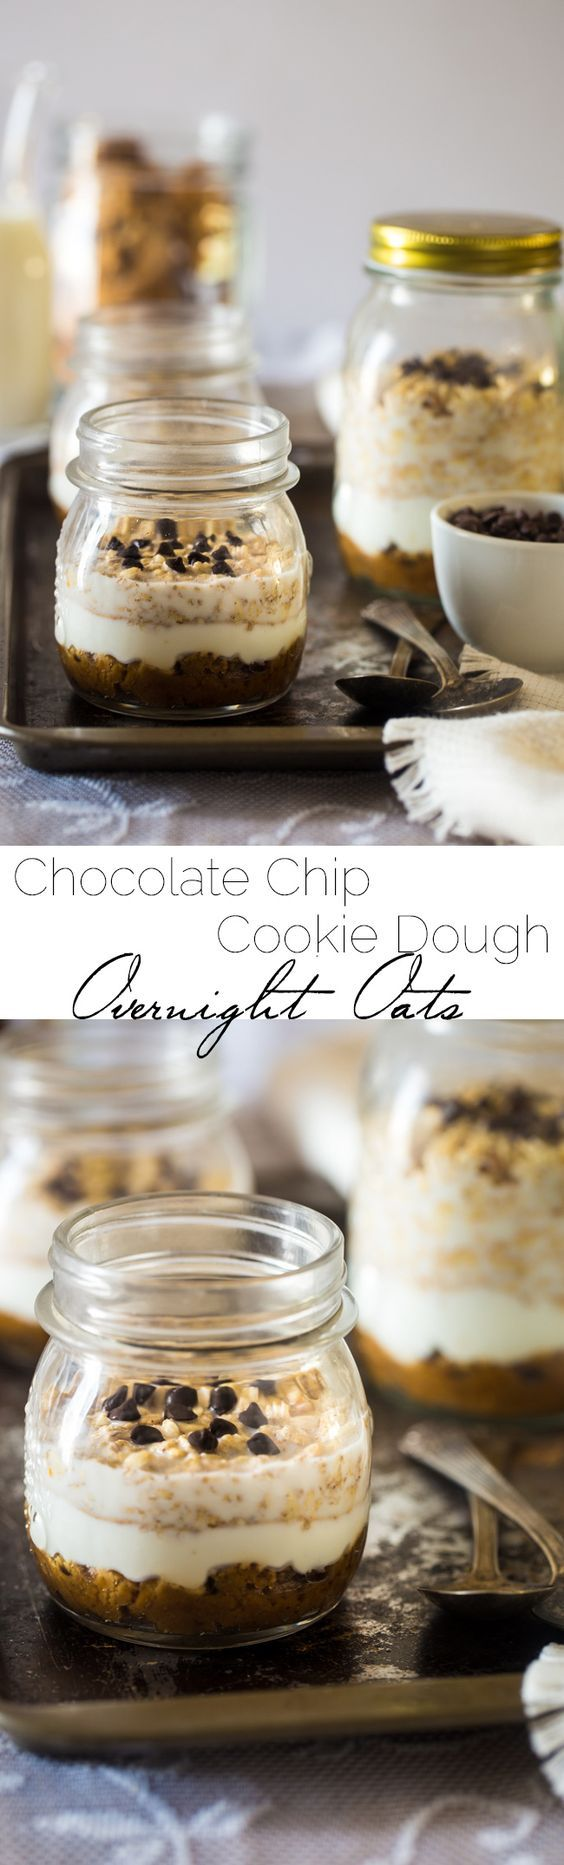 Cookie Dough Overnight Oats - These overnight oats are layered with peanut butter Greek yogurt chocolate chip…